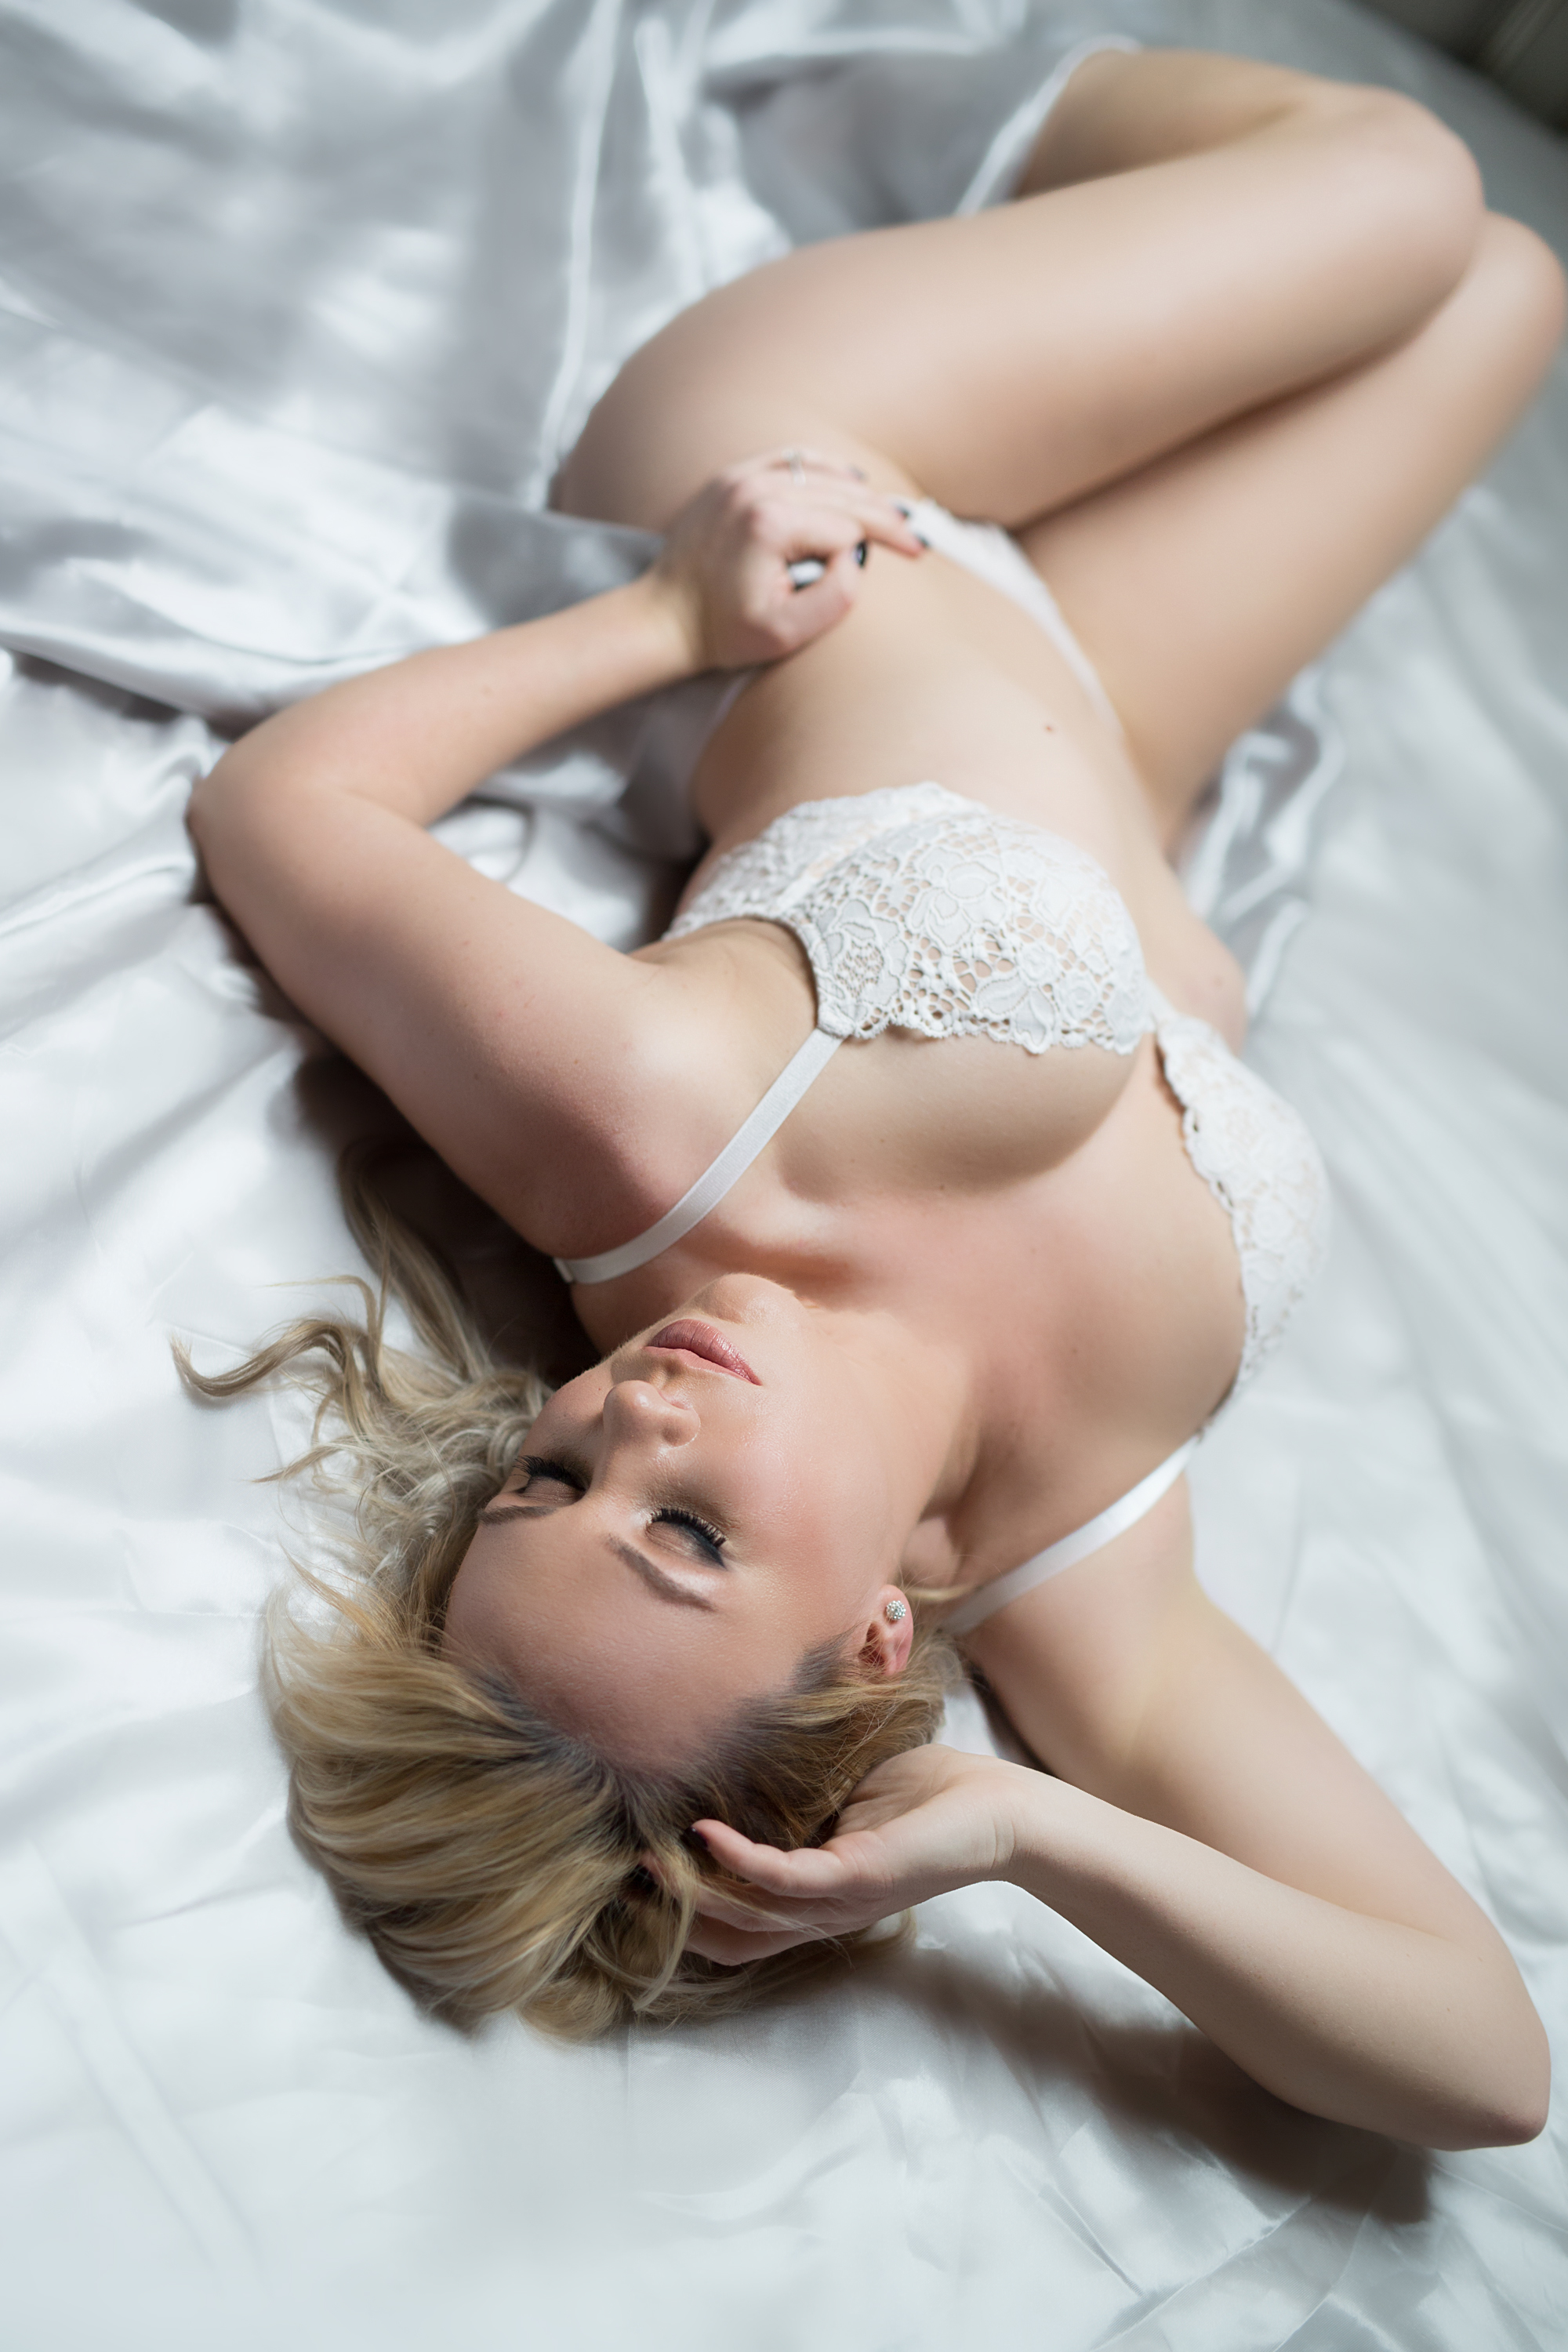 nj-boudoir-kelly-bridal-9873.jpg